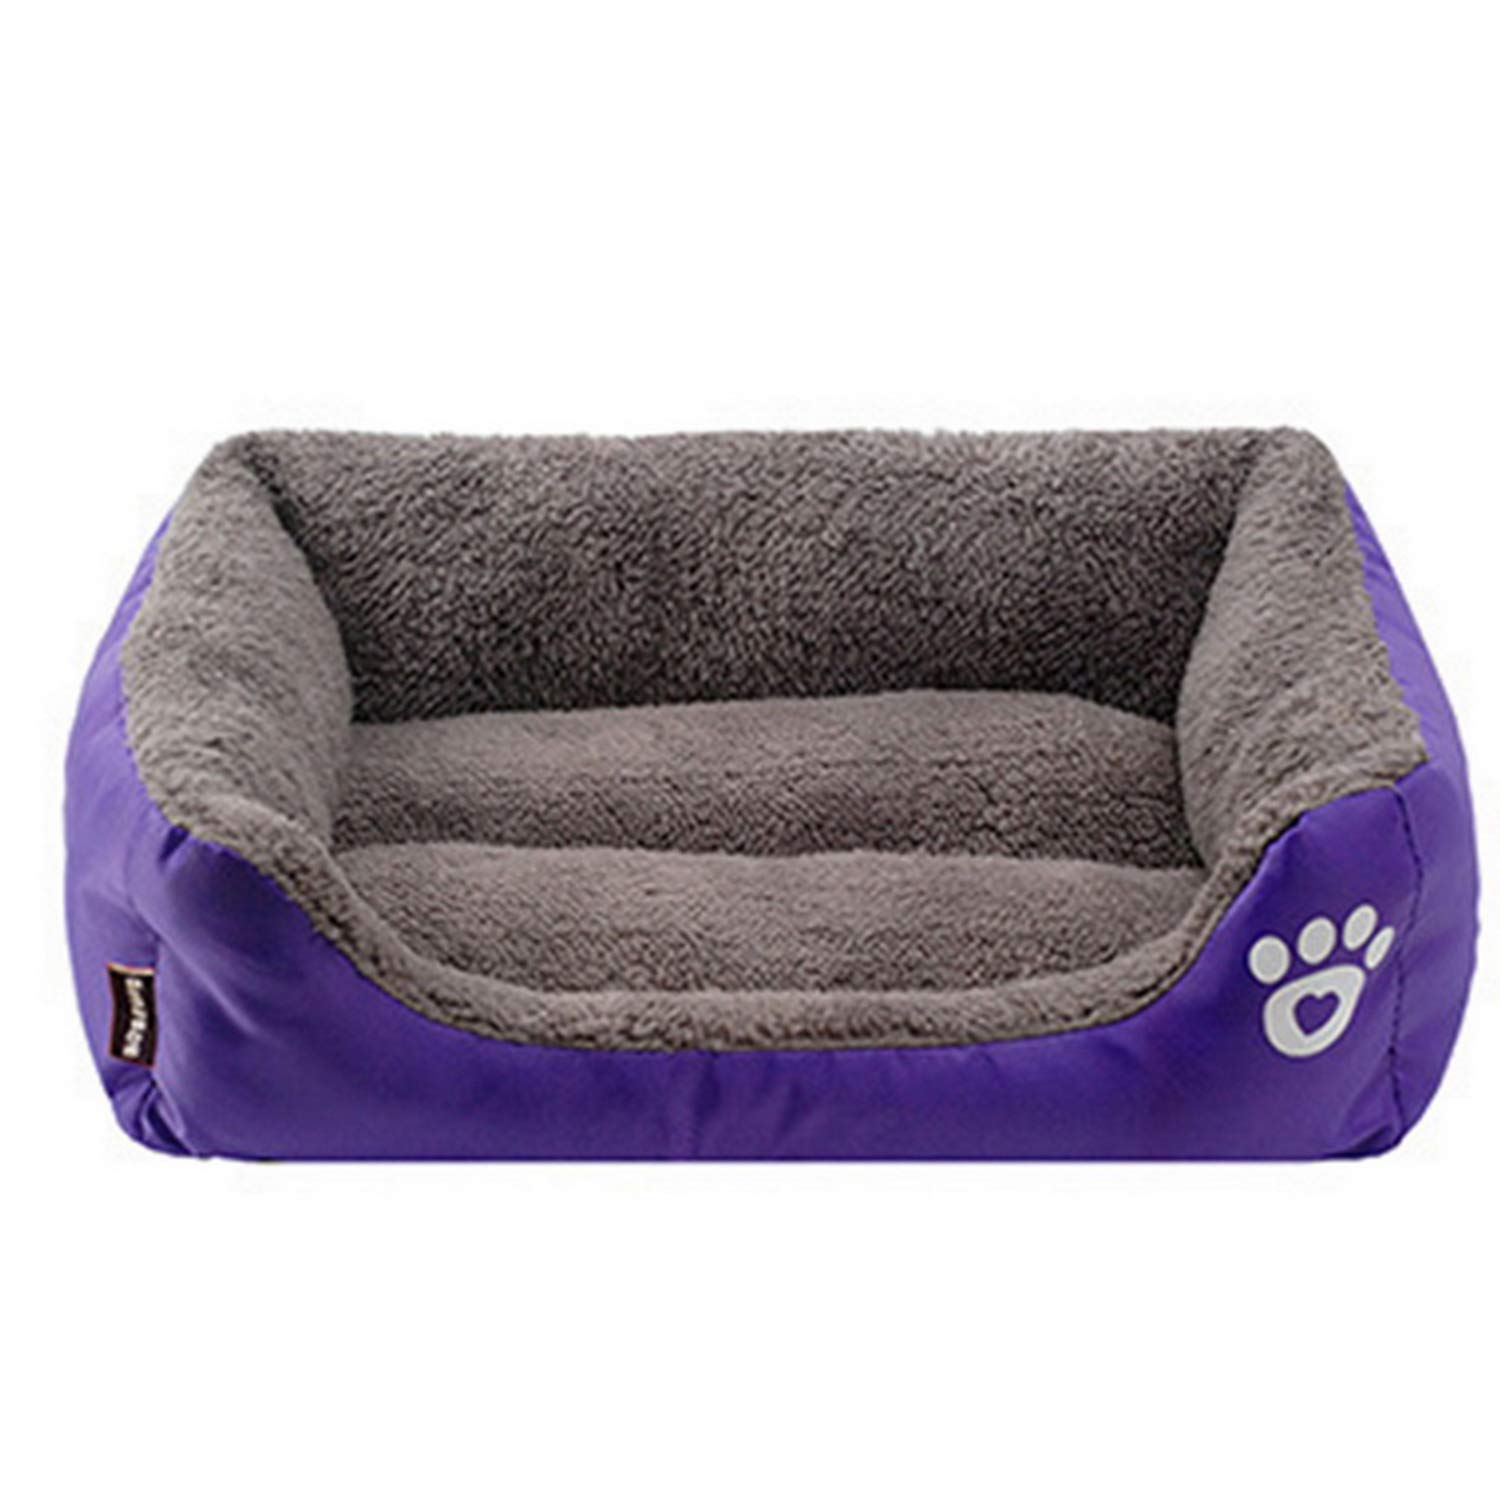 Purple 110cmx85cmx19cm purple 110cmx85cmx19cm PETFDH 6 Sizes Pet Dog Bed Warming Dog House Soft Material Nest Dog Baskets Fall and Winter Warm Kennel for Cat Puppy Quality Purple 110cmx85cmx19cm